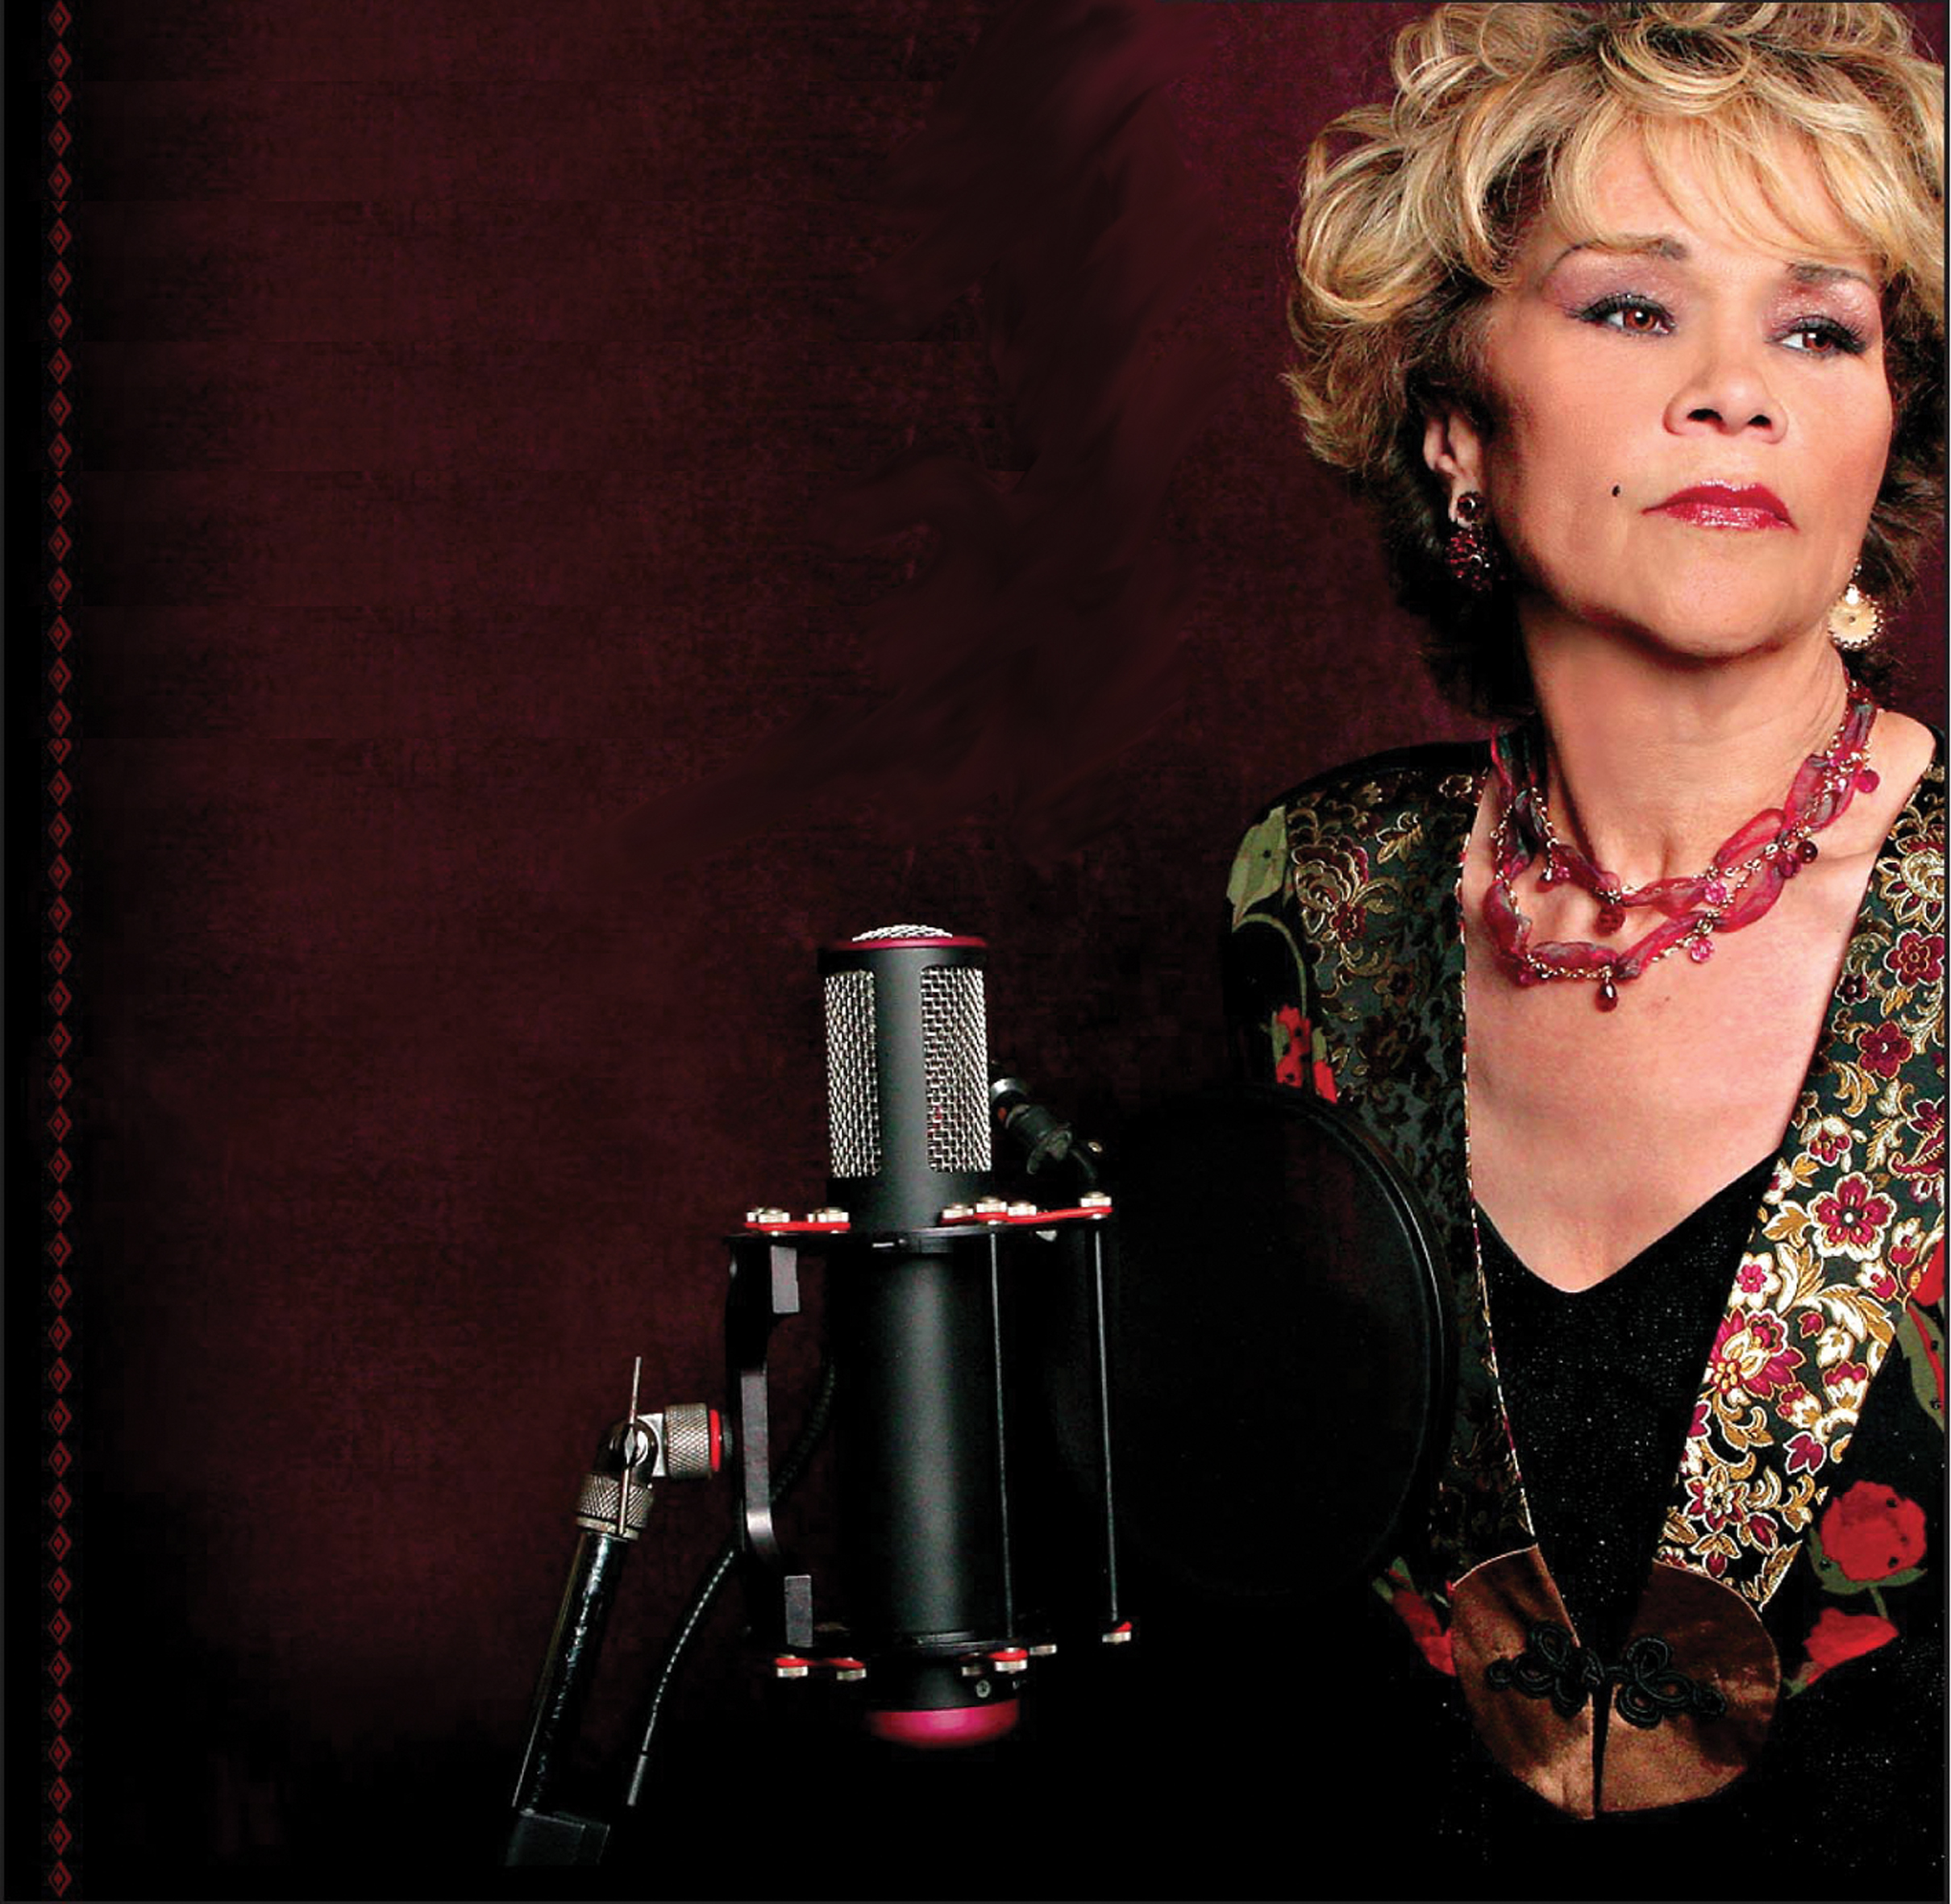 Etta James Broke Down the Barriers and Won. | Longshot's Blog